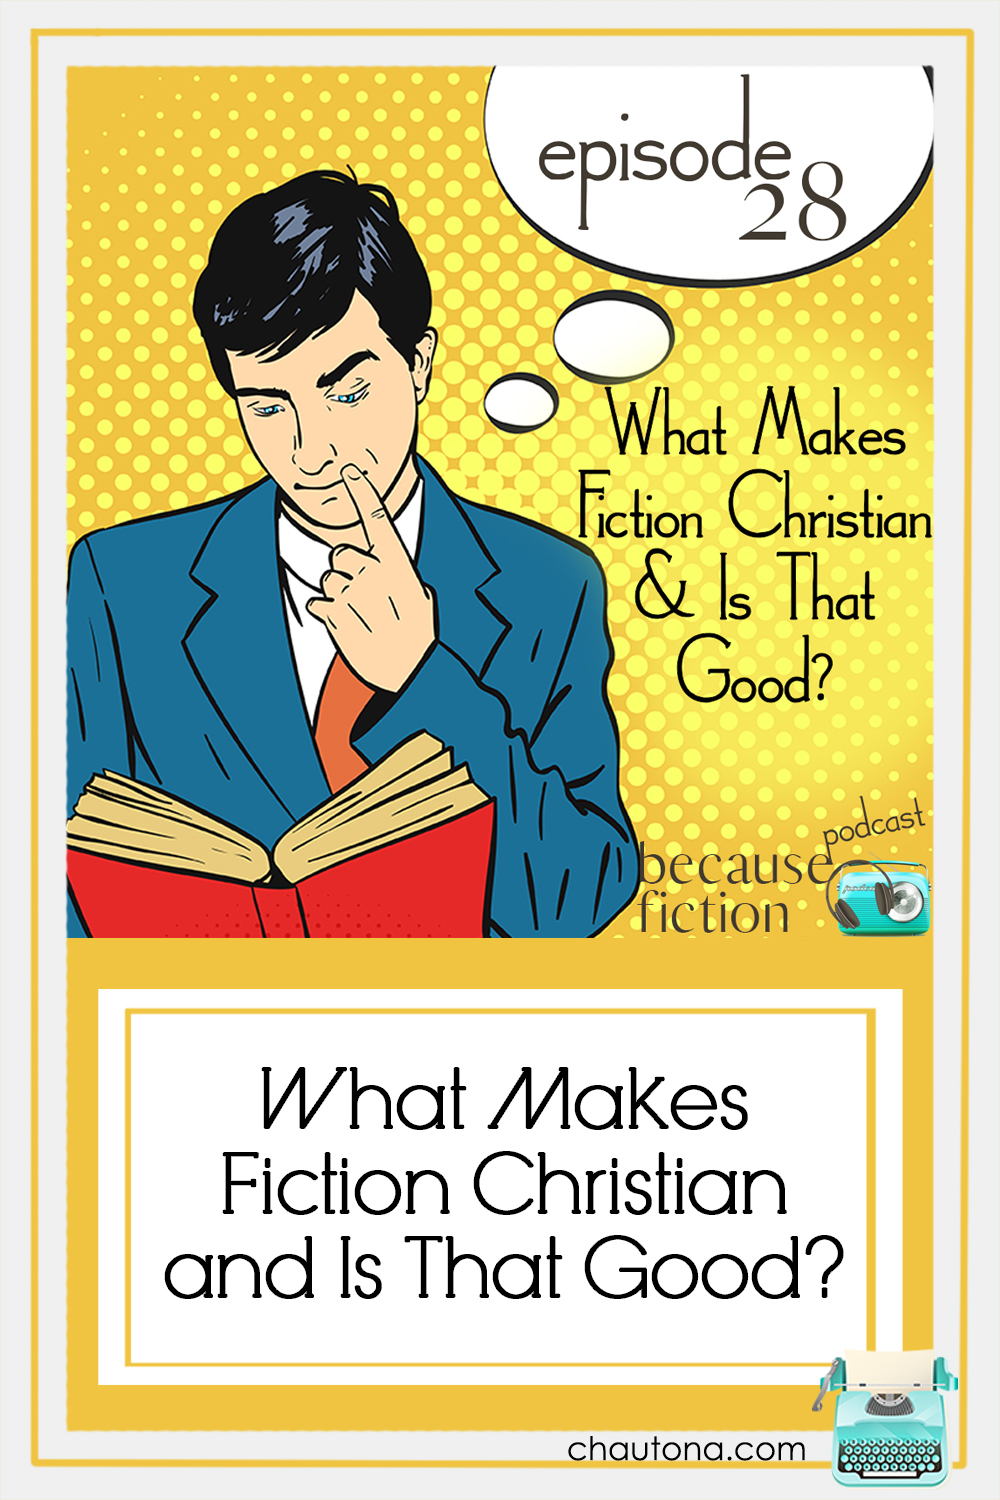 David Rawlings and I have a lovely conversation about Christian fiction, what makes good fiction, good writing, and what makes fiction, Christian. via @chautonahavig